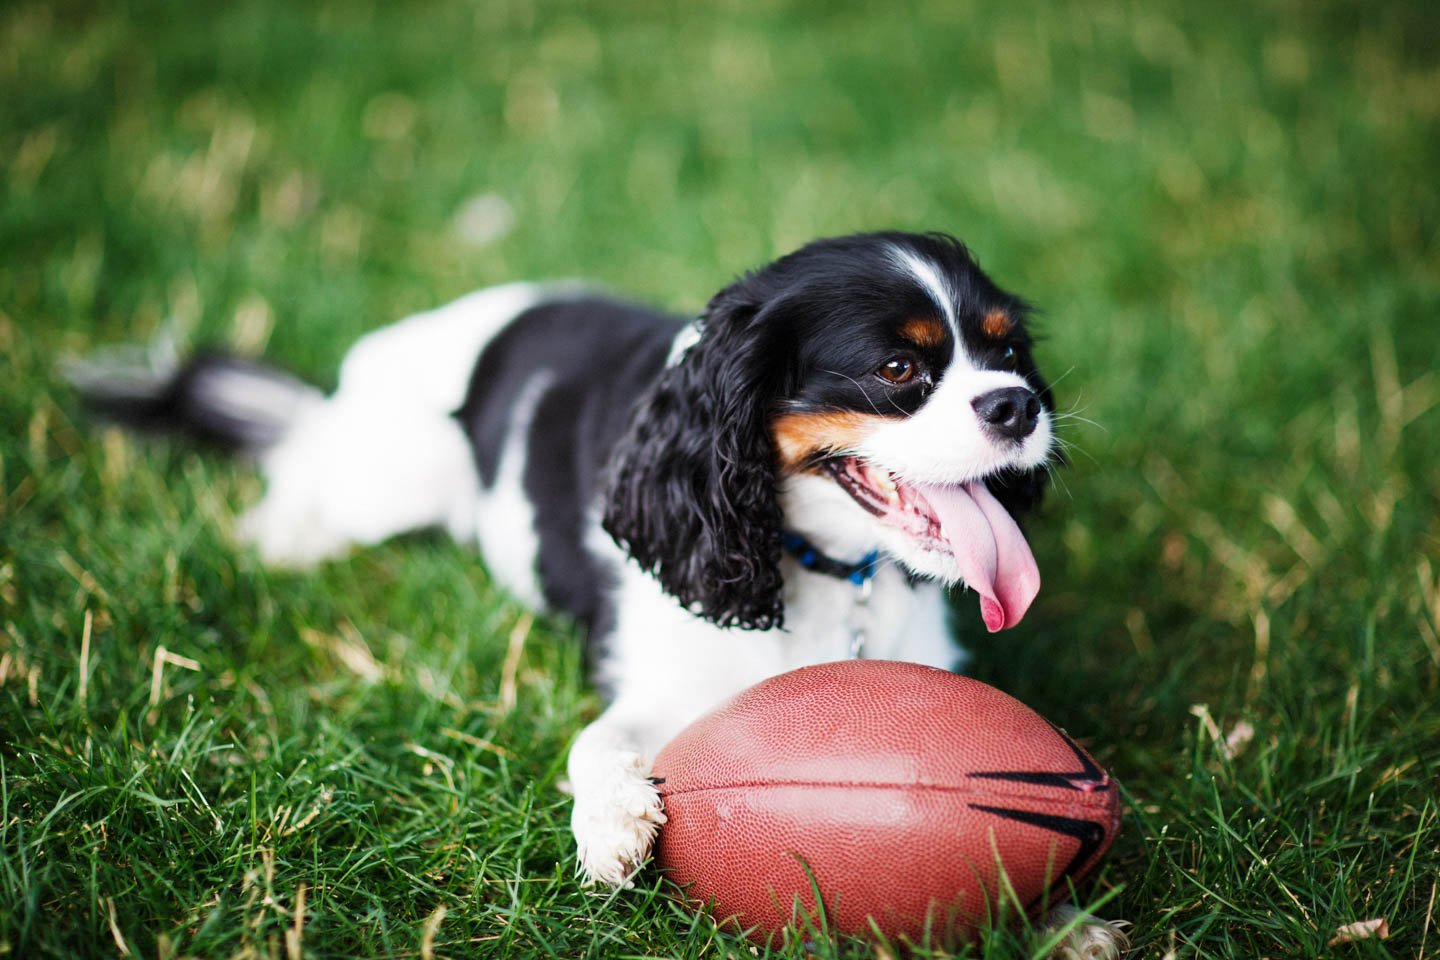 The dog is ready to play football, or fetch